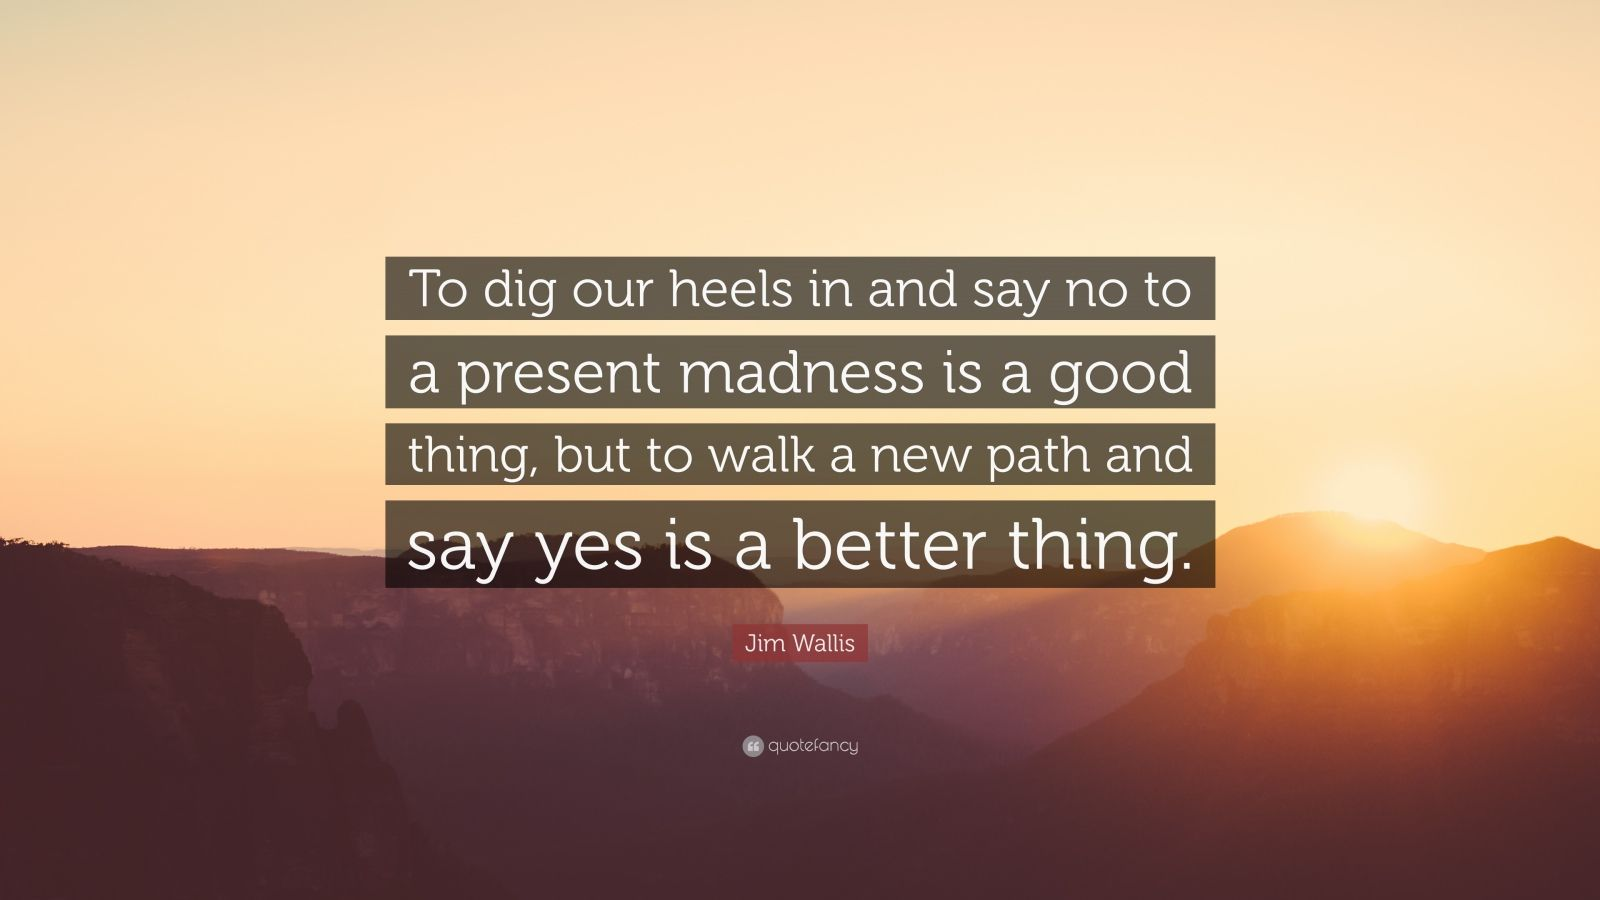 """Jim Wallis Quote: """"To dig our heels in and say no to a present madness is a good thing, but to walk a new path and say yes is a better thing."""""""